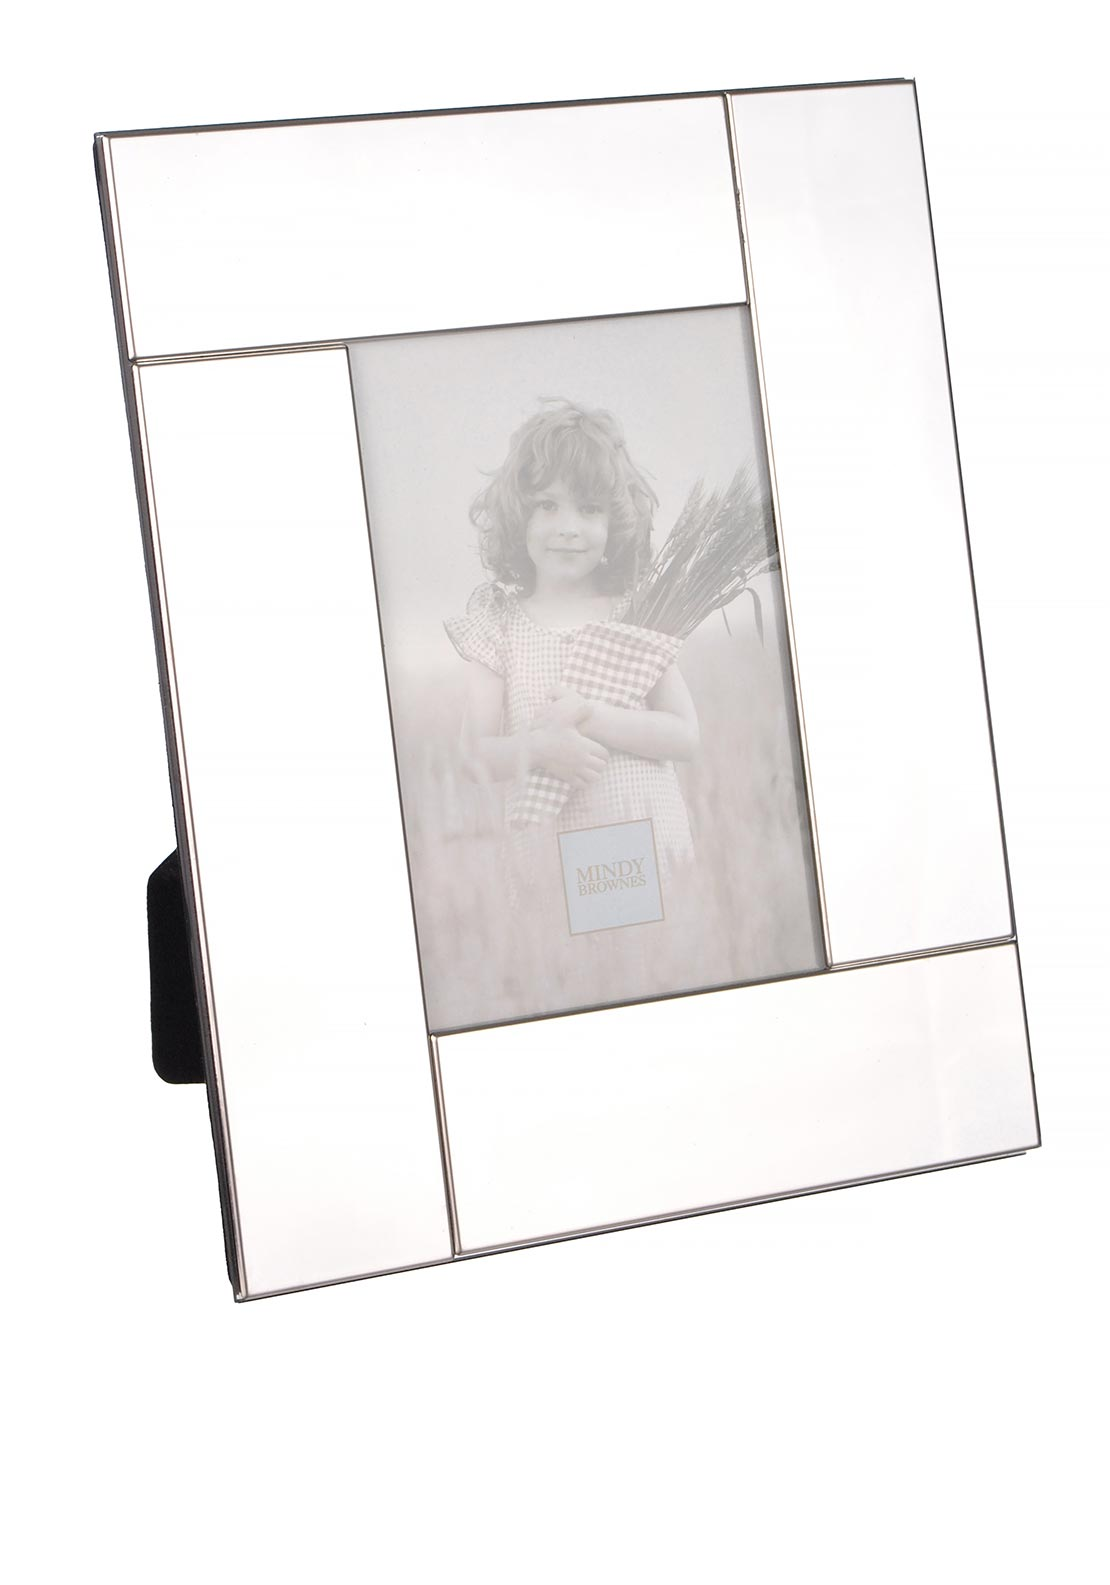 Mindy Brownes Cori Photo Frame, 5 x 7 inches